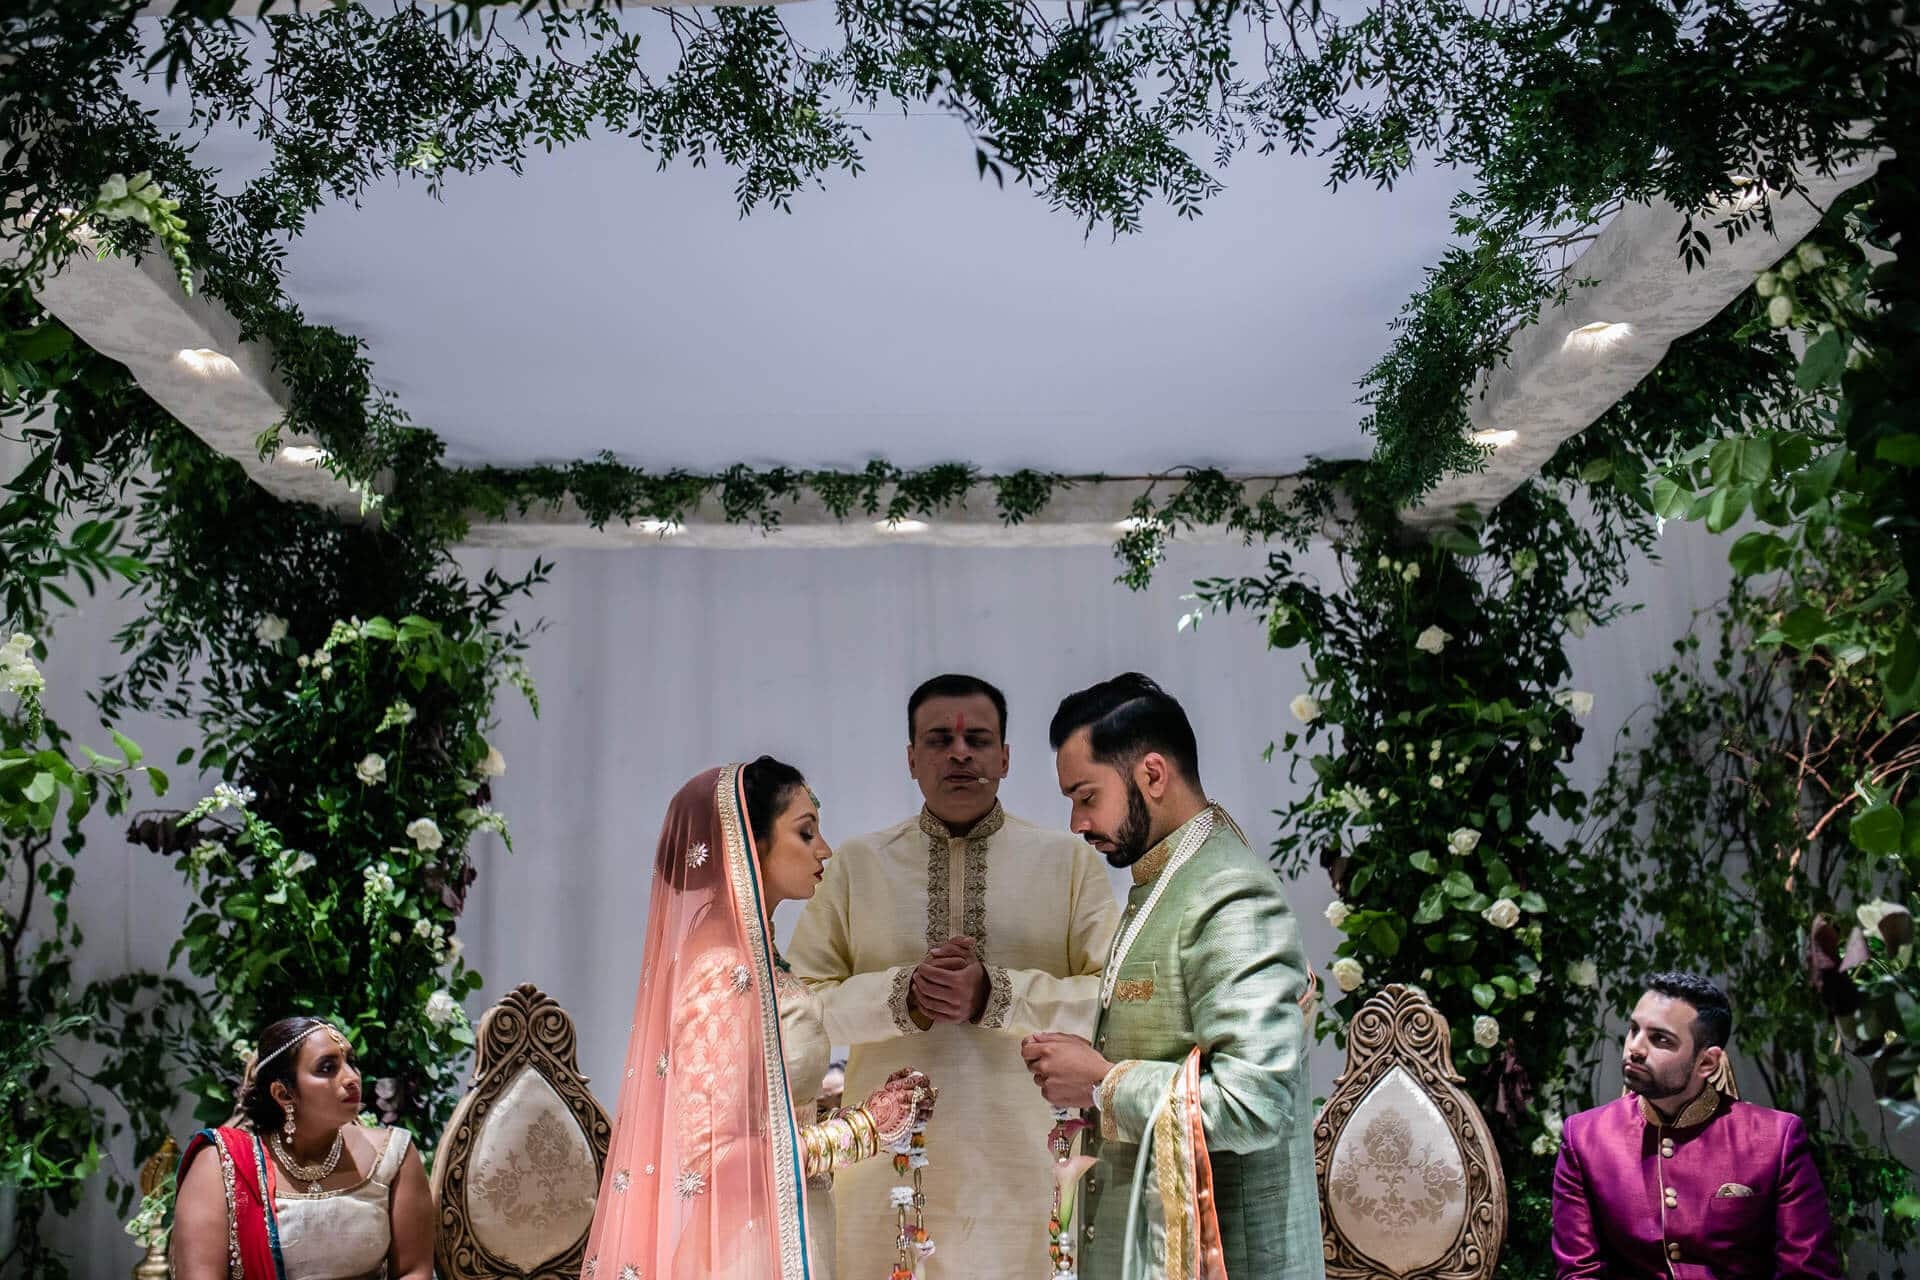 Bride and groom during garland ceremony